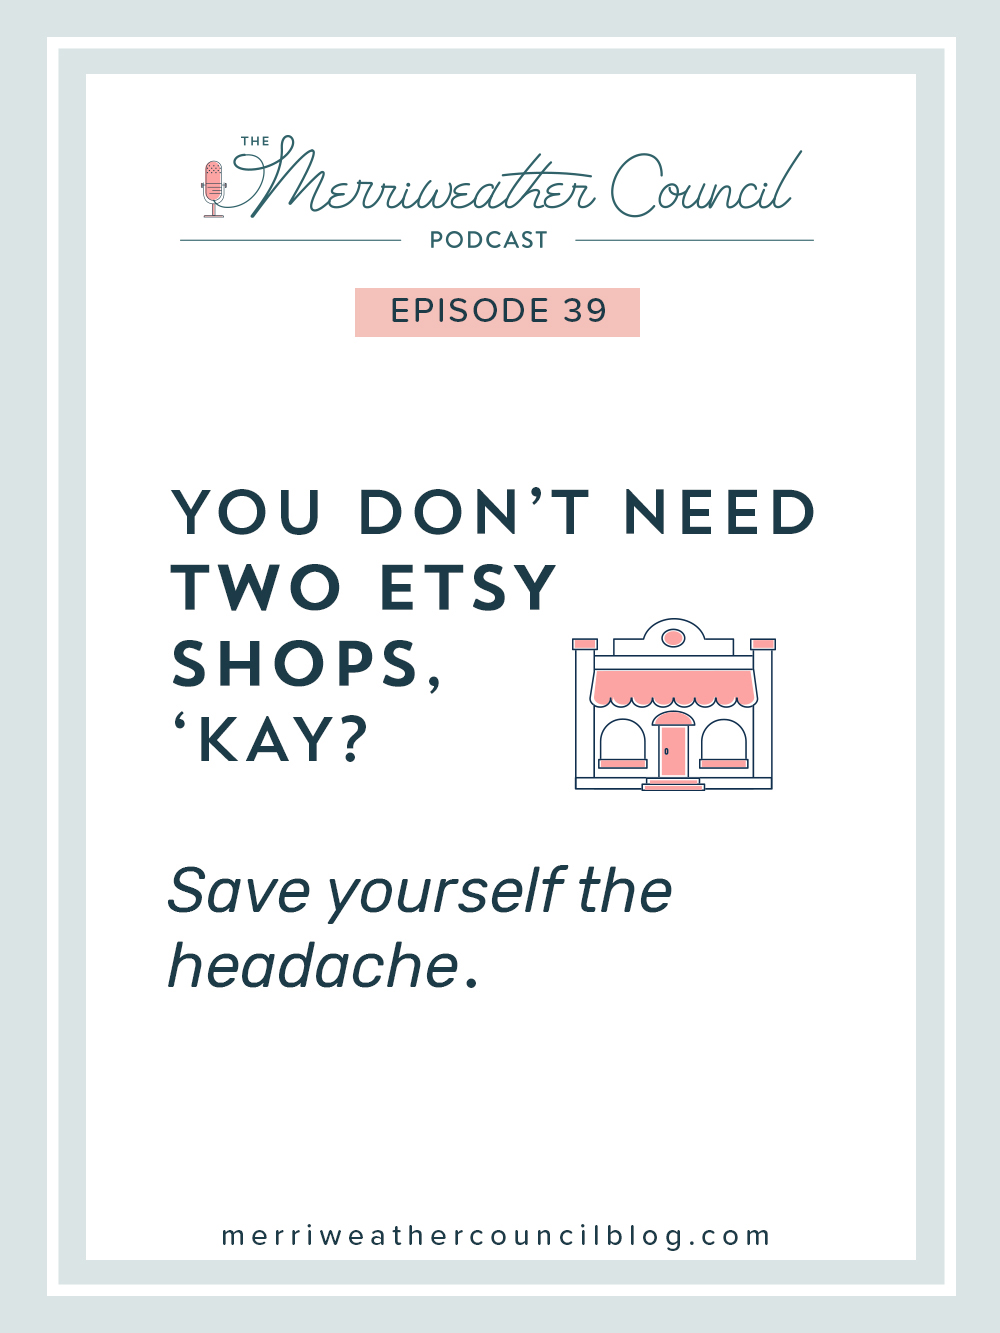 Episode 39: You Don't Need Two Etsy Shops, 'kay? | The Merriweather Council Podcast